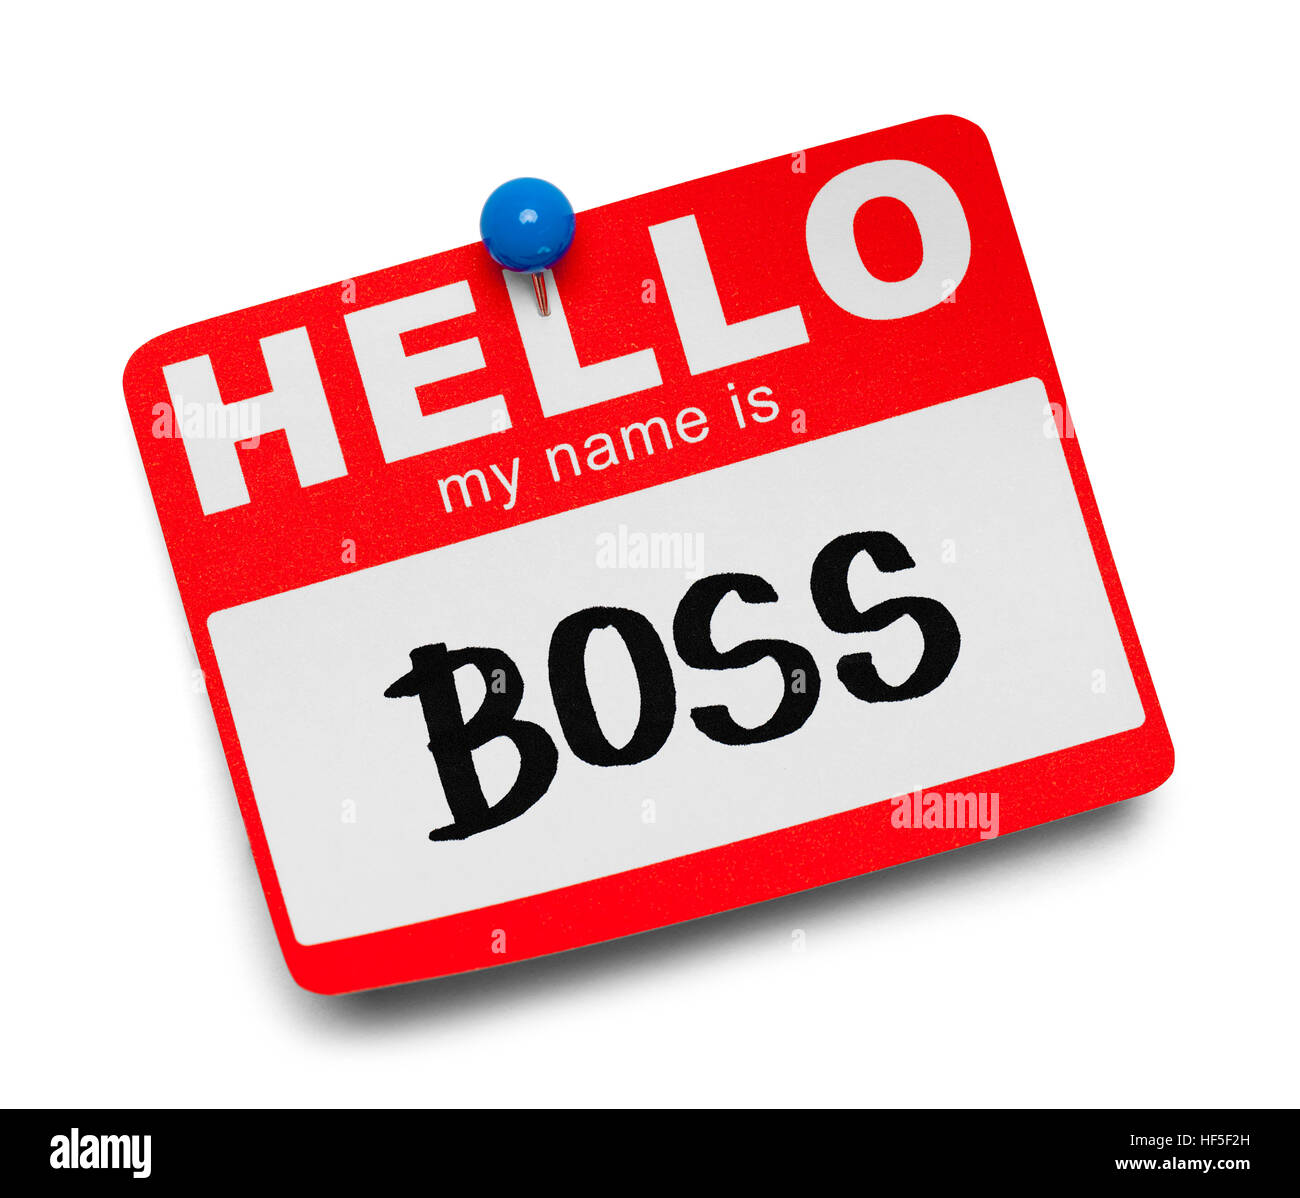 Hello My Name Is Boss Tag Isolated on White Background. - Stock Image